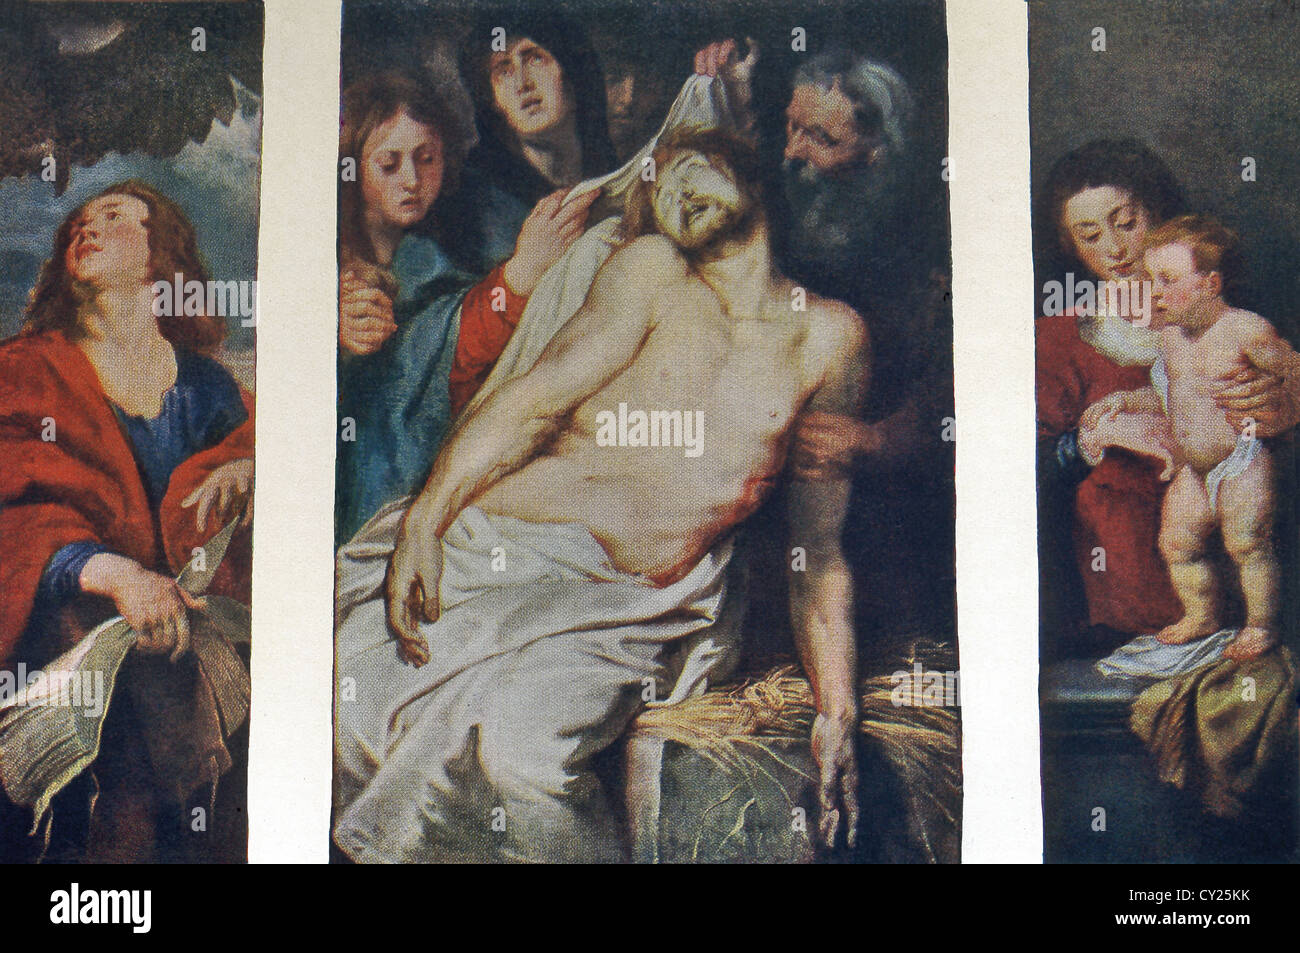 This triptych, titled Christ a La Paille,was painting in 1617-18 by Peter Paul Rubens for tomb of an Antwerp merchant. - Stock Image